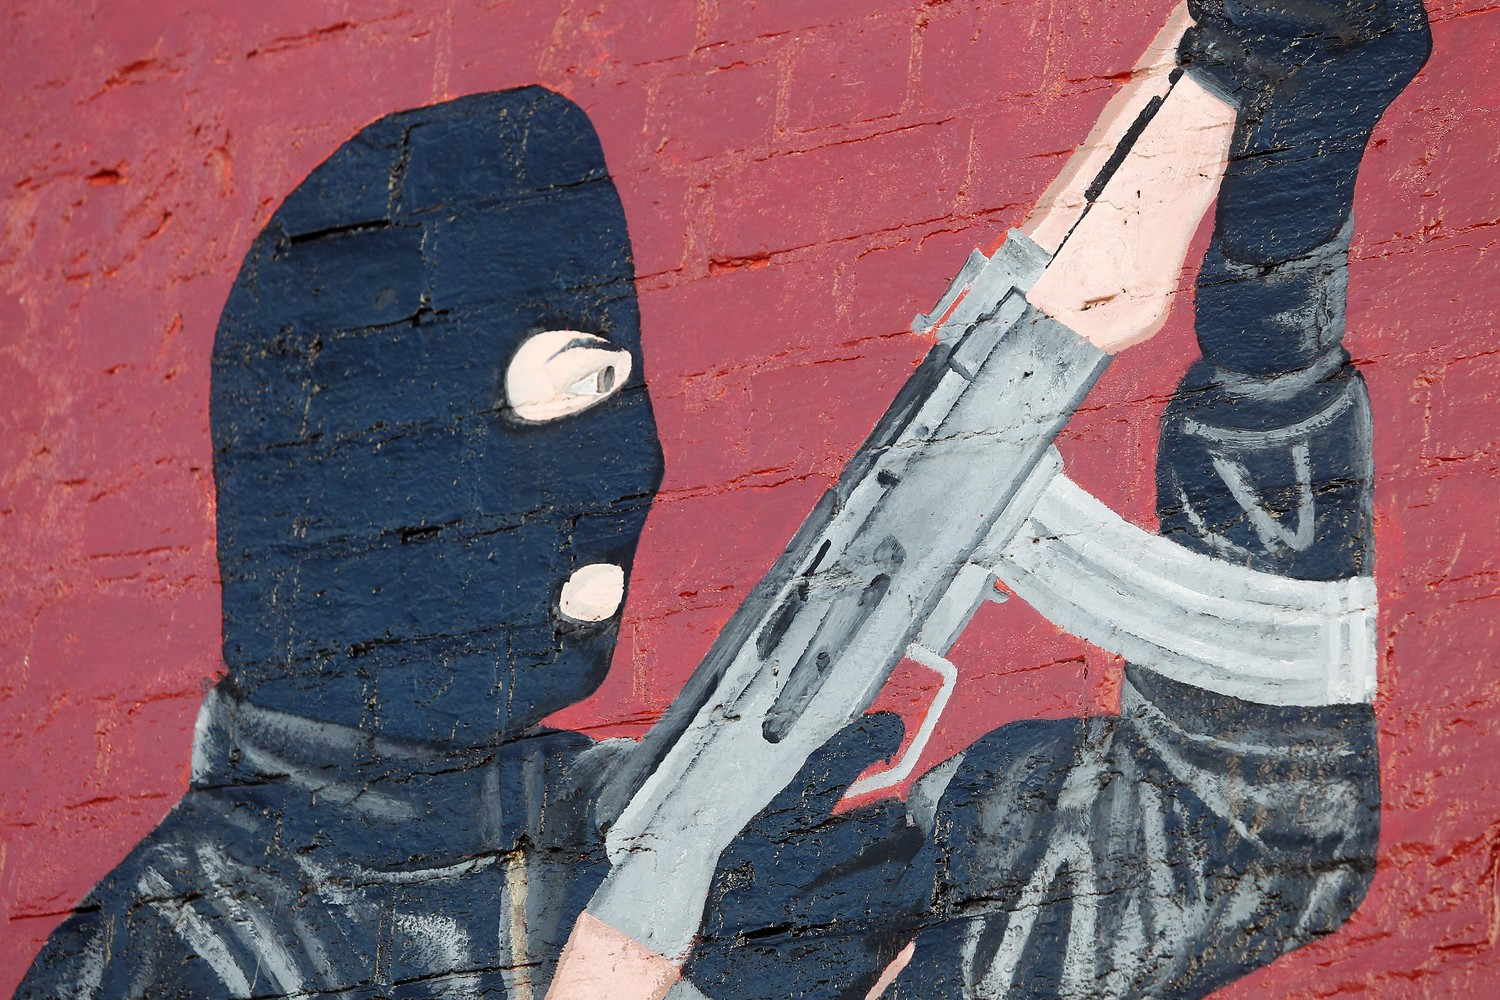 A Belfast mural dedicated to the loyalist paramilitary UVF